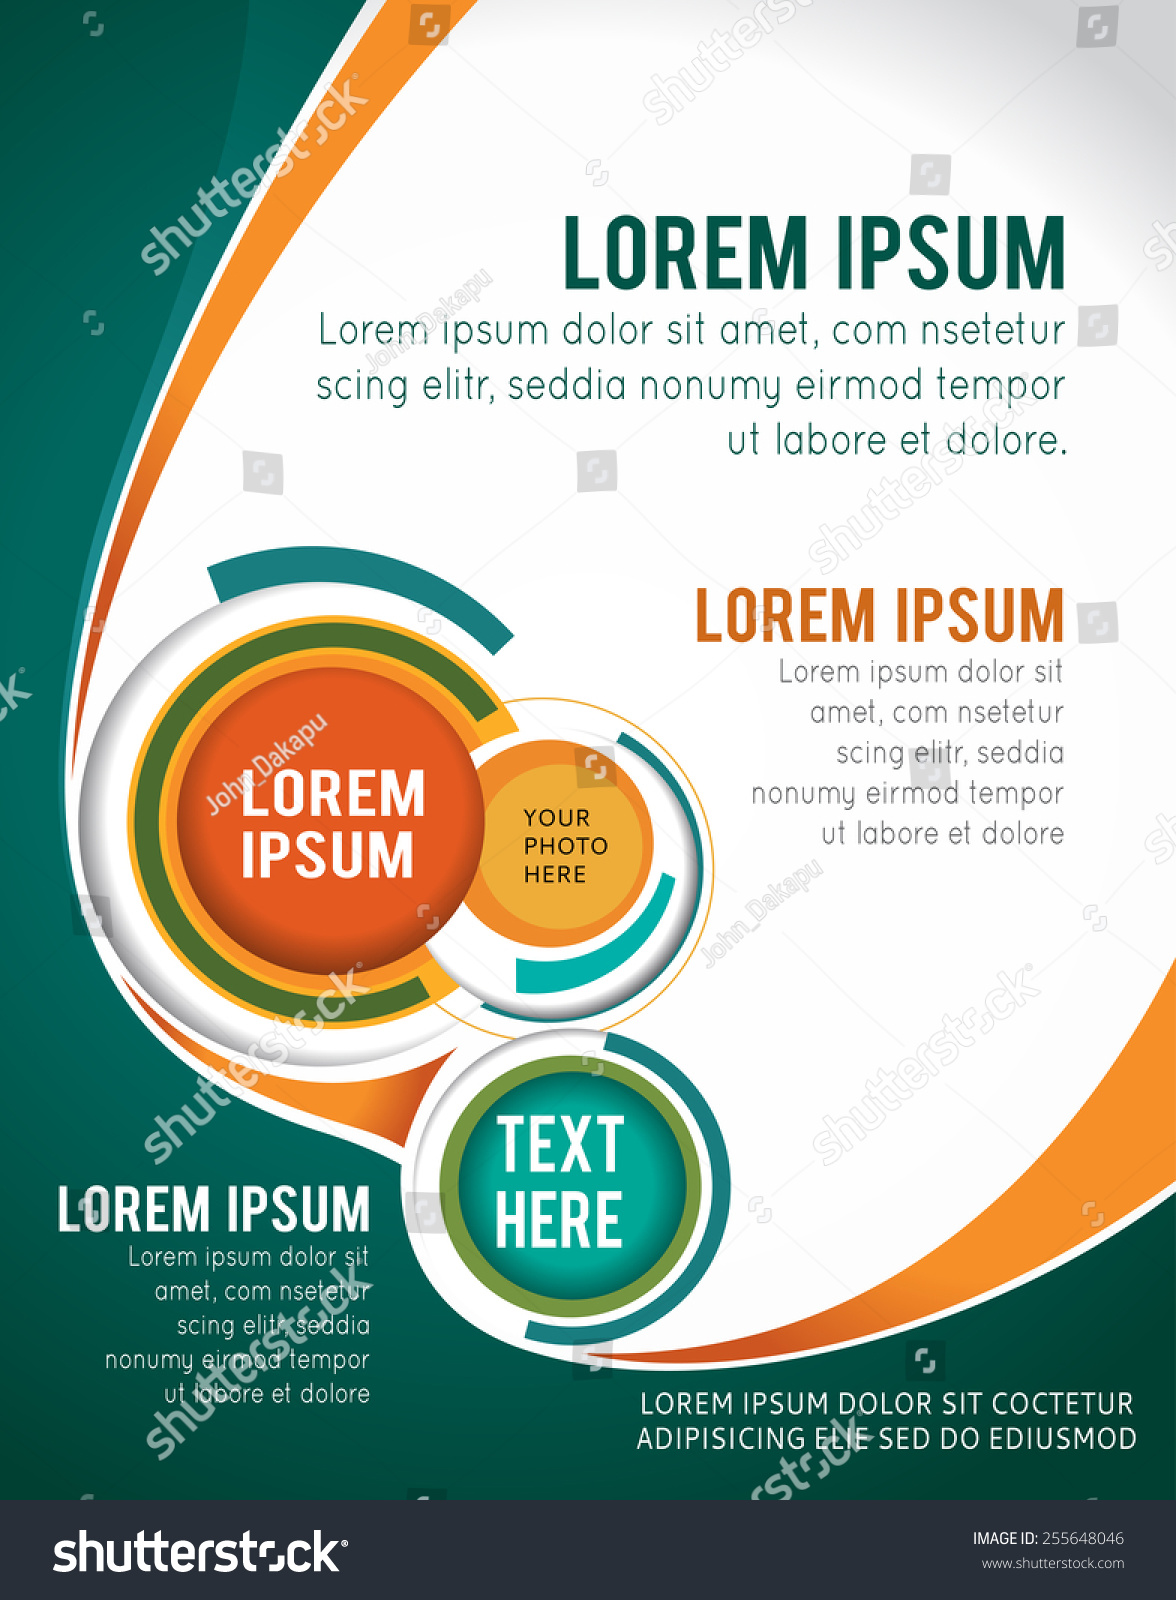 Poster design layout templates - Download